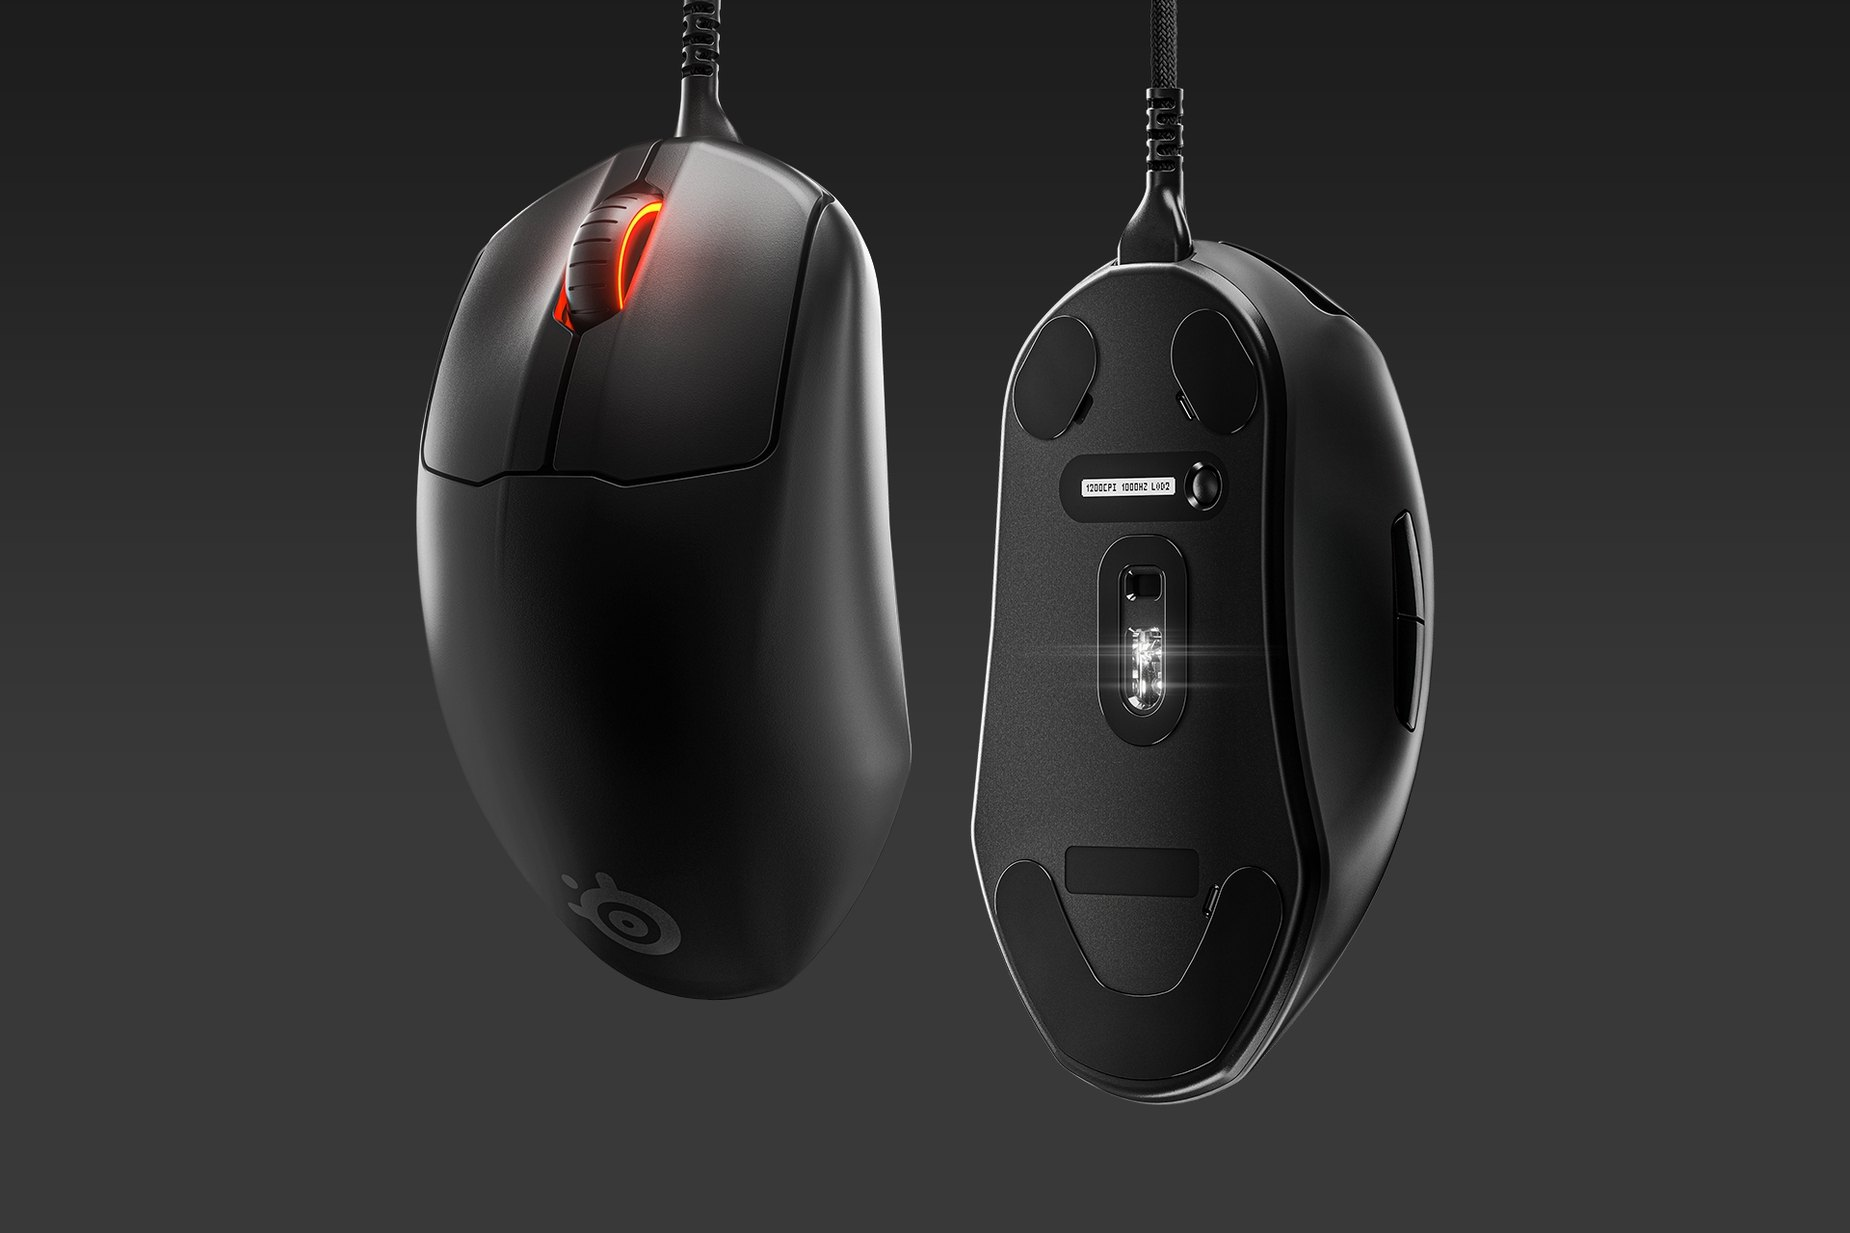 Two Prime+ mice: one showing the palm rest and the other showing the sensor.